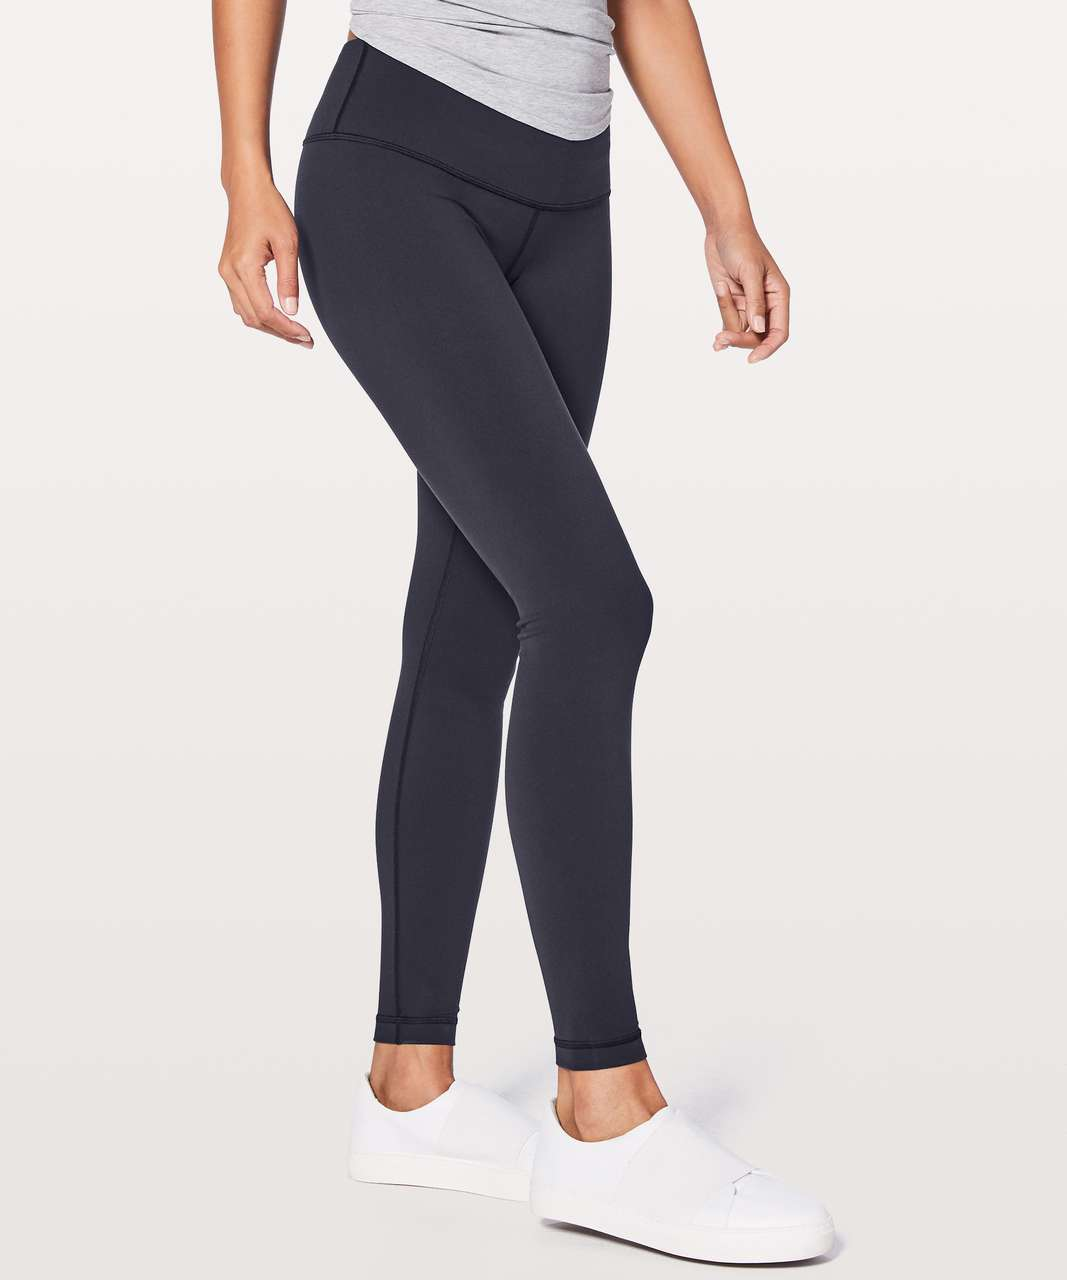 67deef437e244 Lululemon Wunder Under Low-Rise Tight *Full-On Luon 28